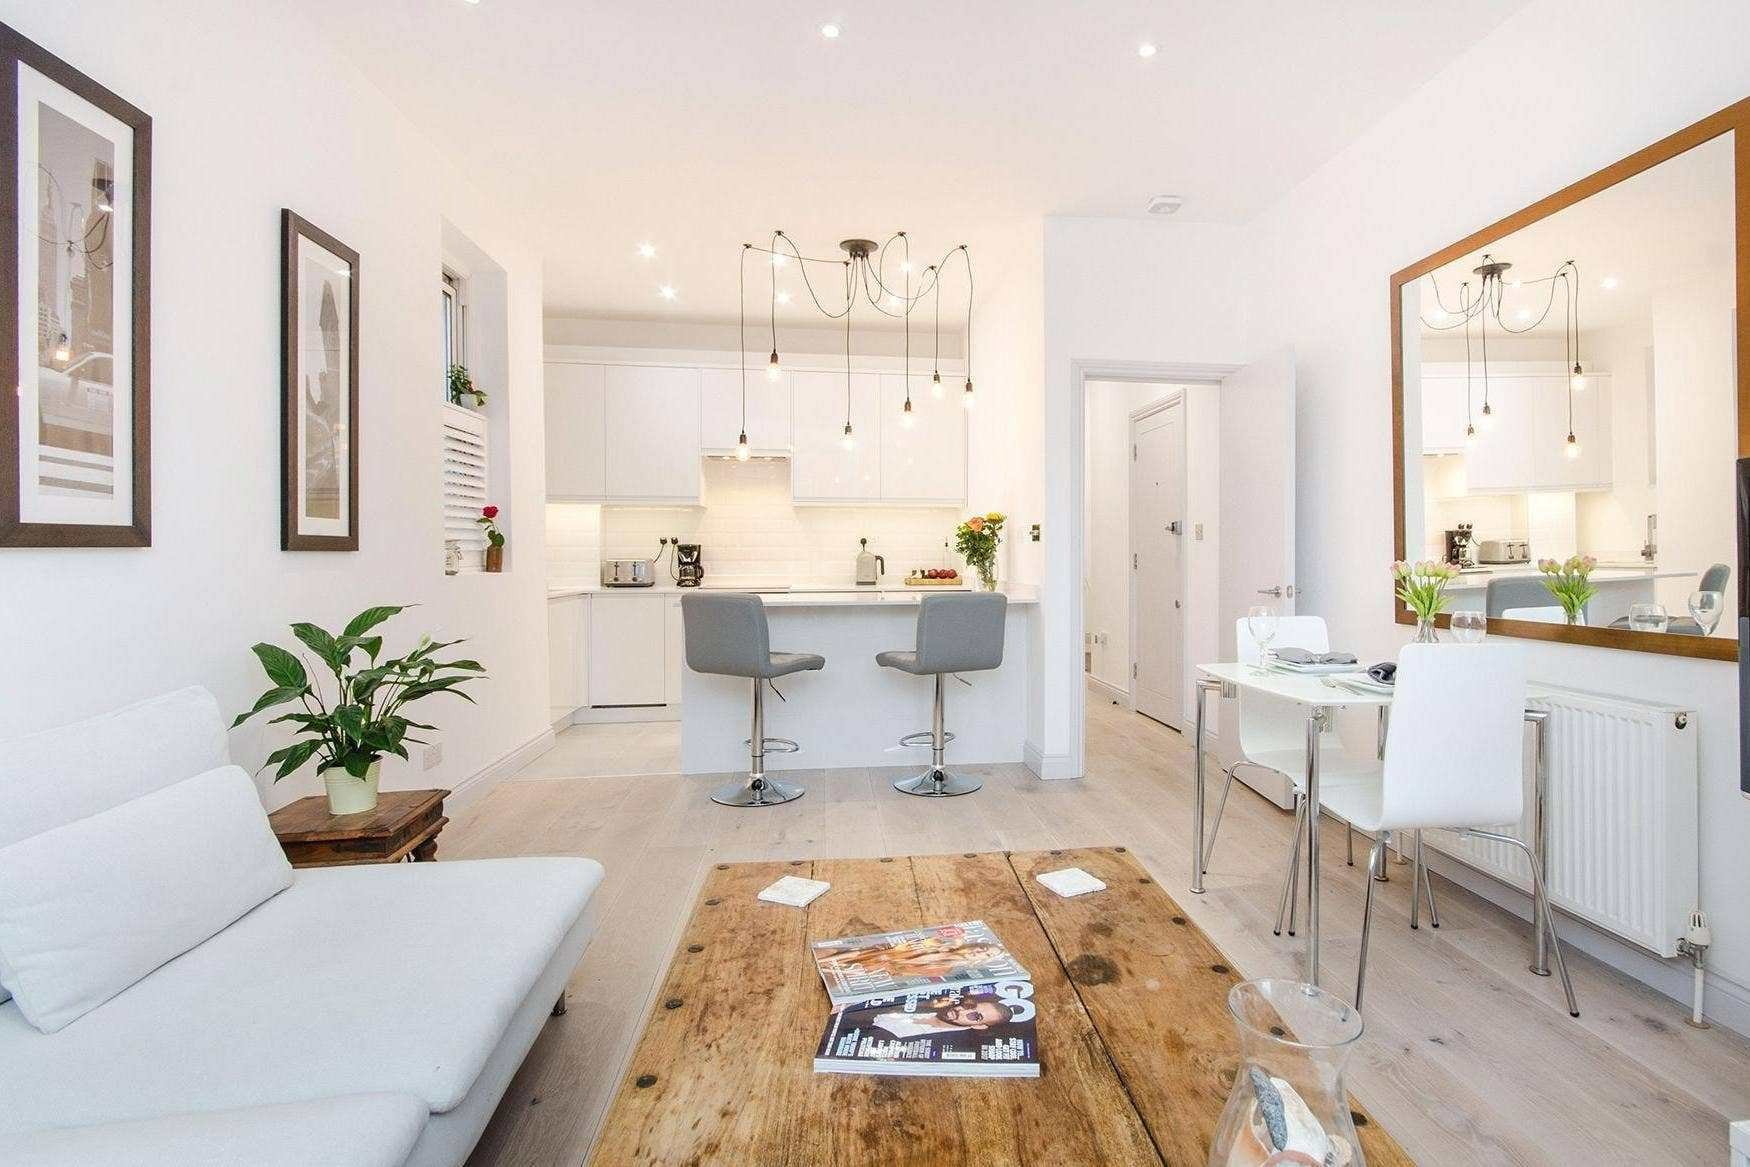 Best London Buy Of The Week Two Bedroom Split Level Flat Close To Streatham Common Comes With High With Pictures